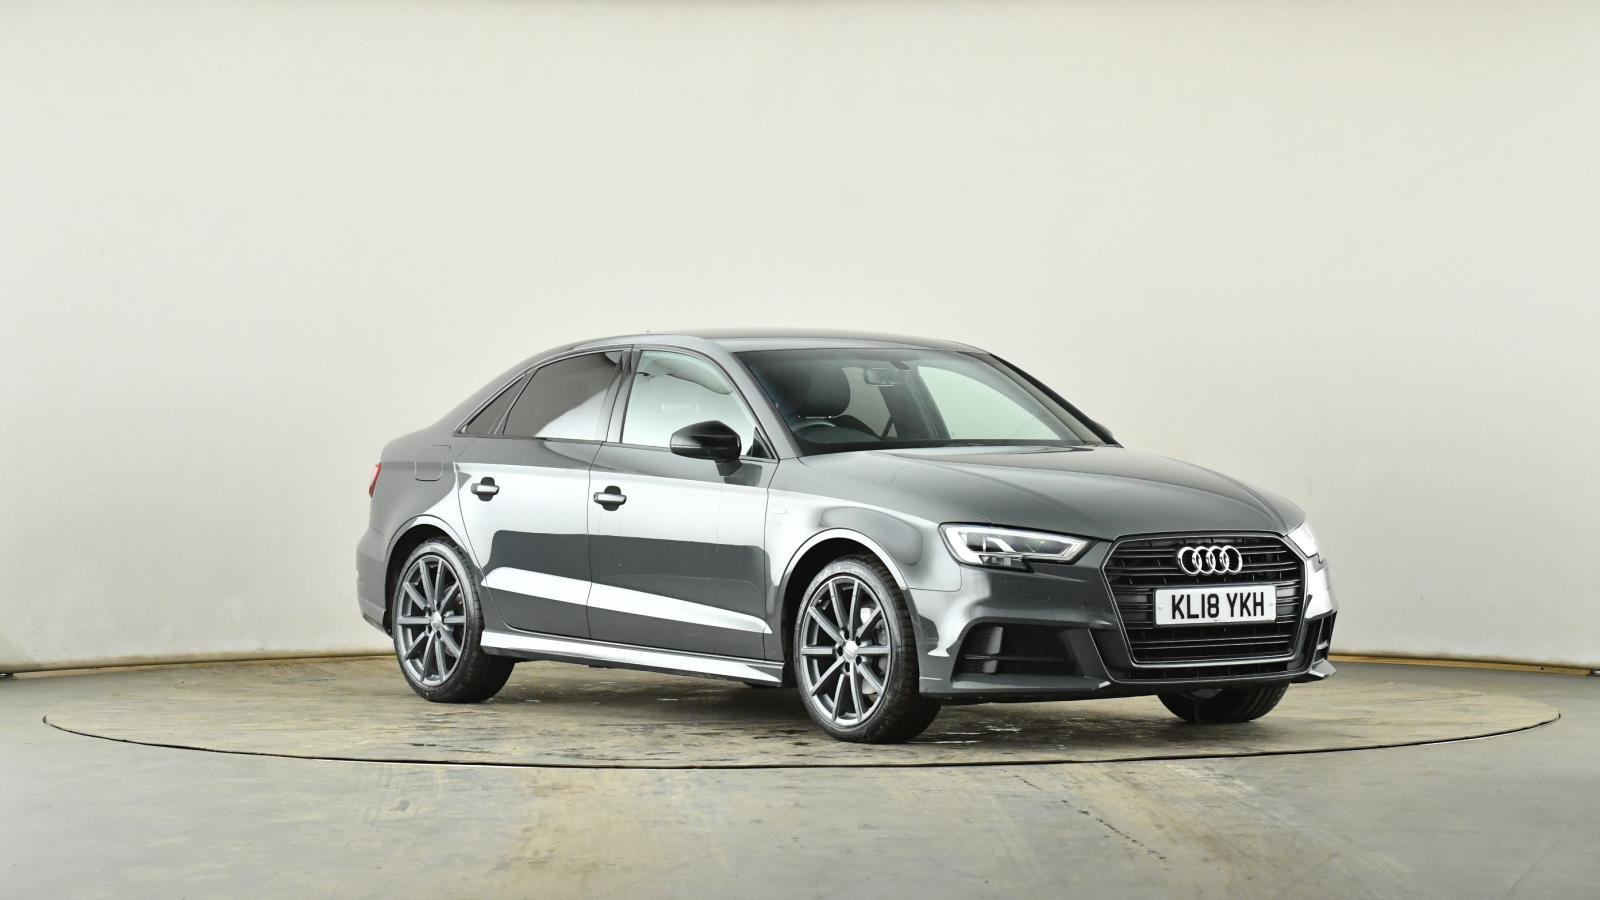 Used Audi A3 2 0 Tdi Black Edition 4dr S Tronic 7 Speed Grey Kl18ykh Norwich